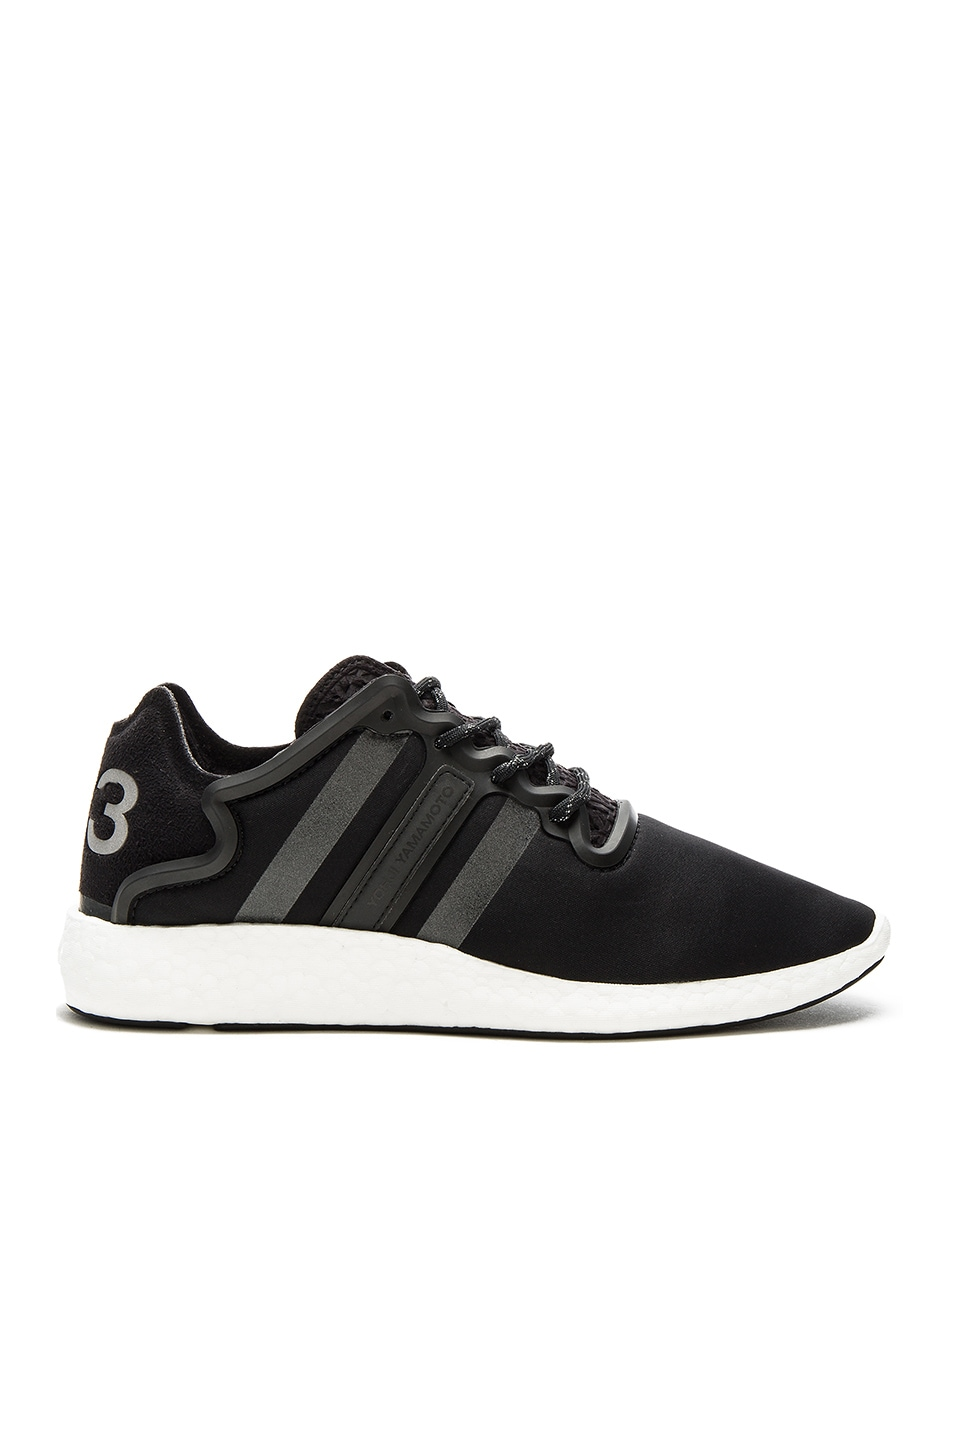 8737f739de5a1 Y-3 Yohji Yamamoto Yohji Run in Core Black   Reflective   FTW White ...